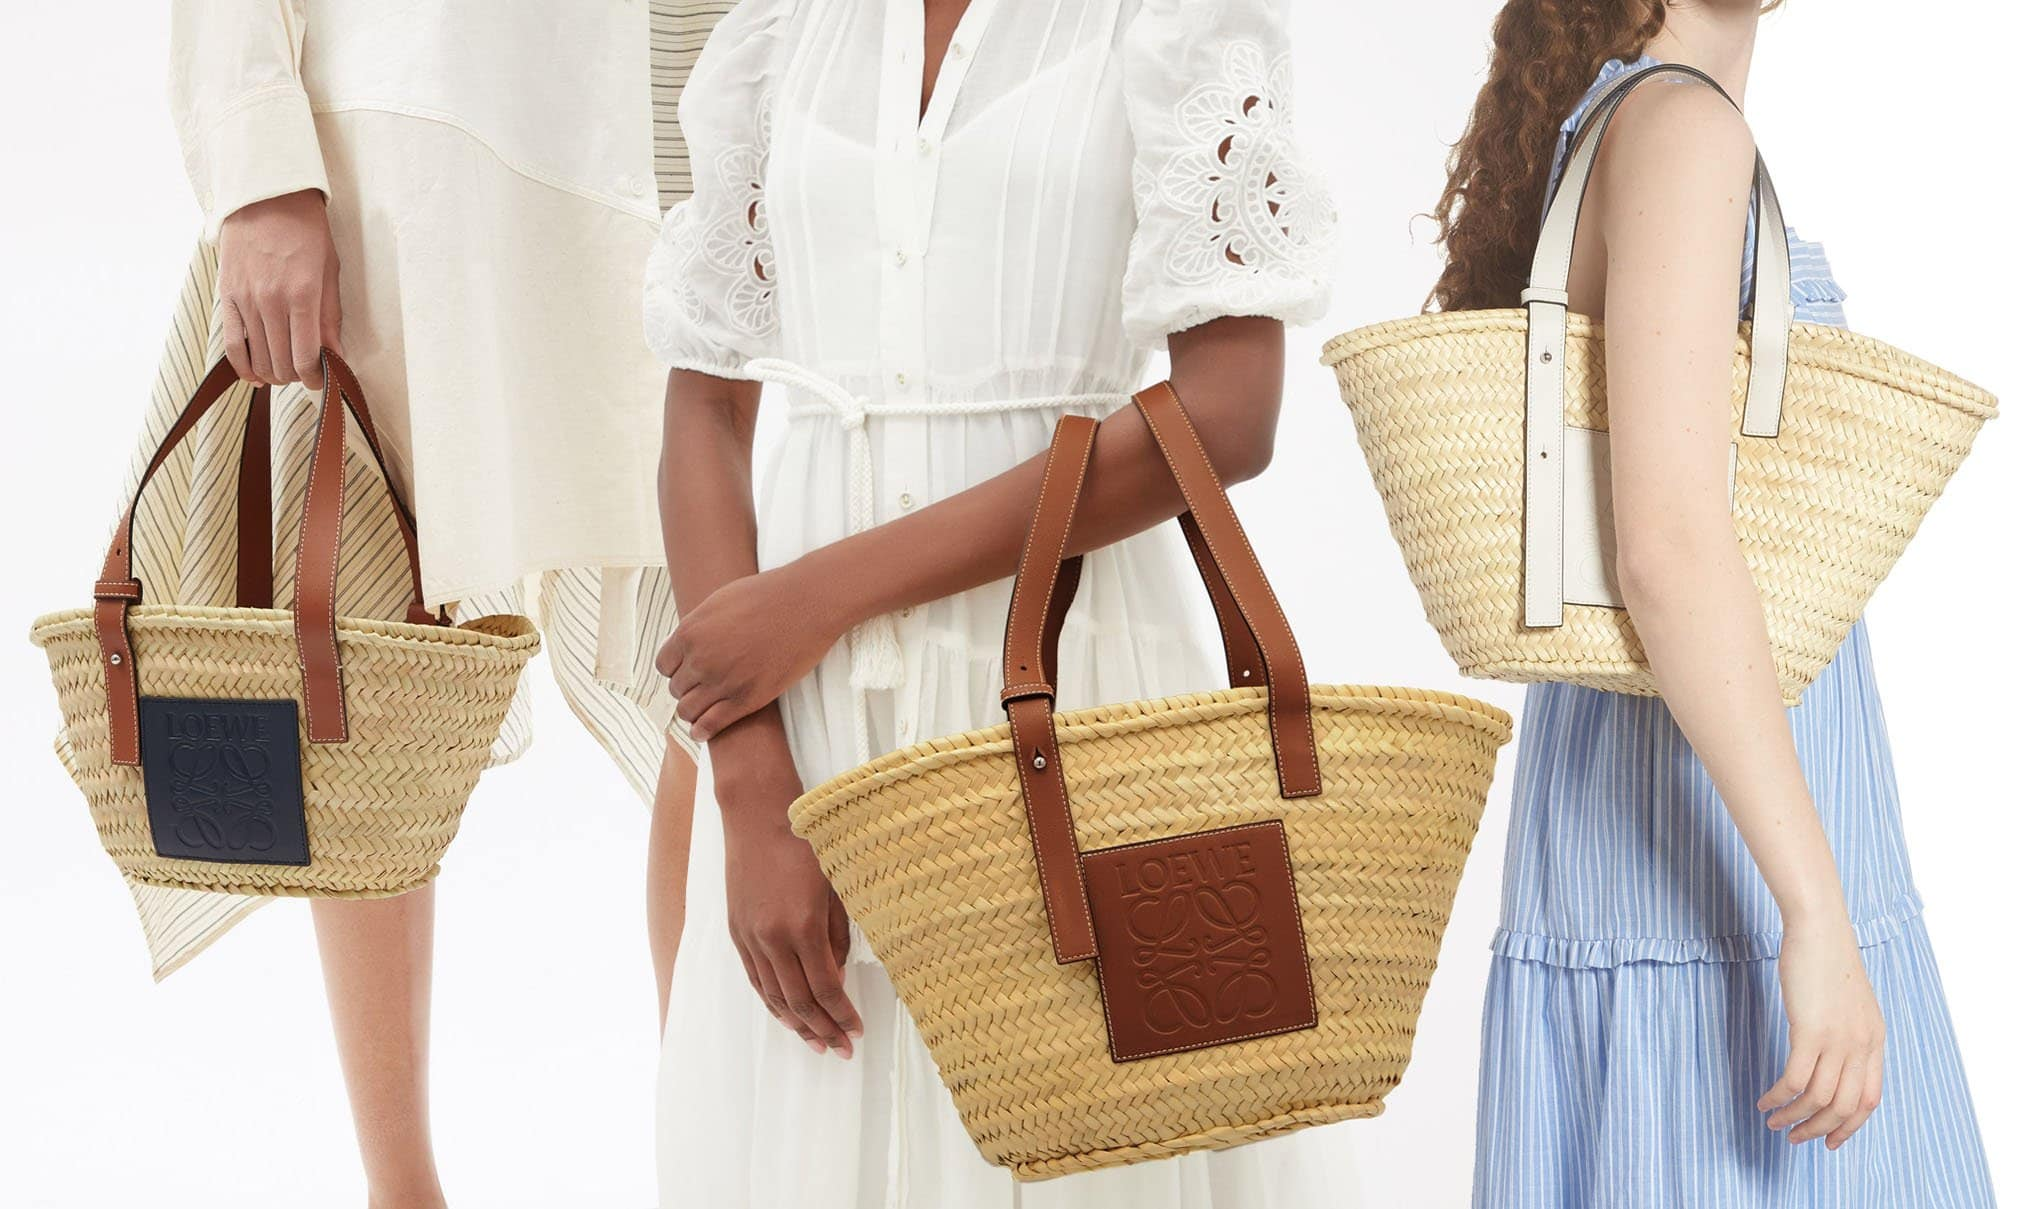 Available in different sizes, the Loewe basket bag features woven palm leaves with leather trims and an Anagram patch